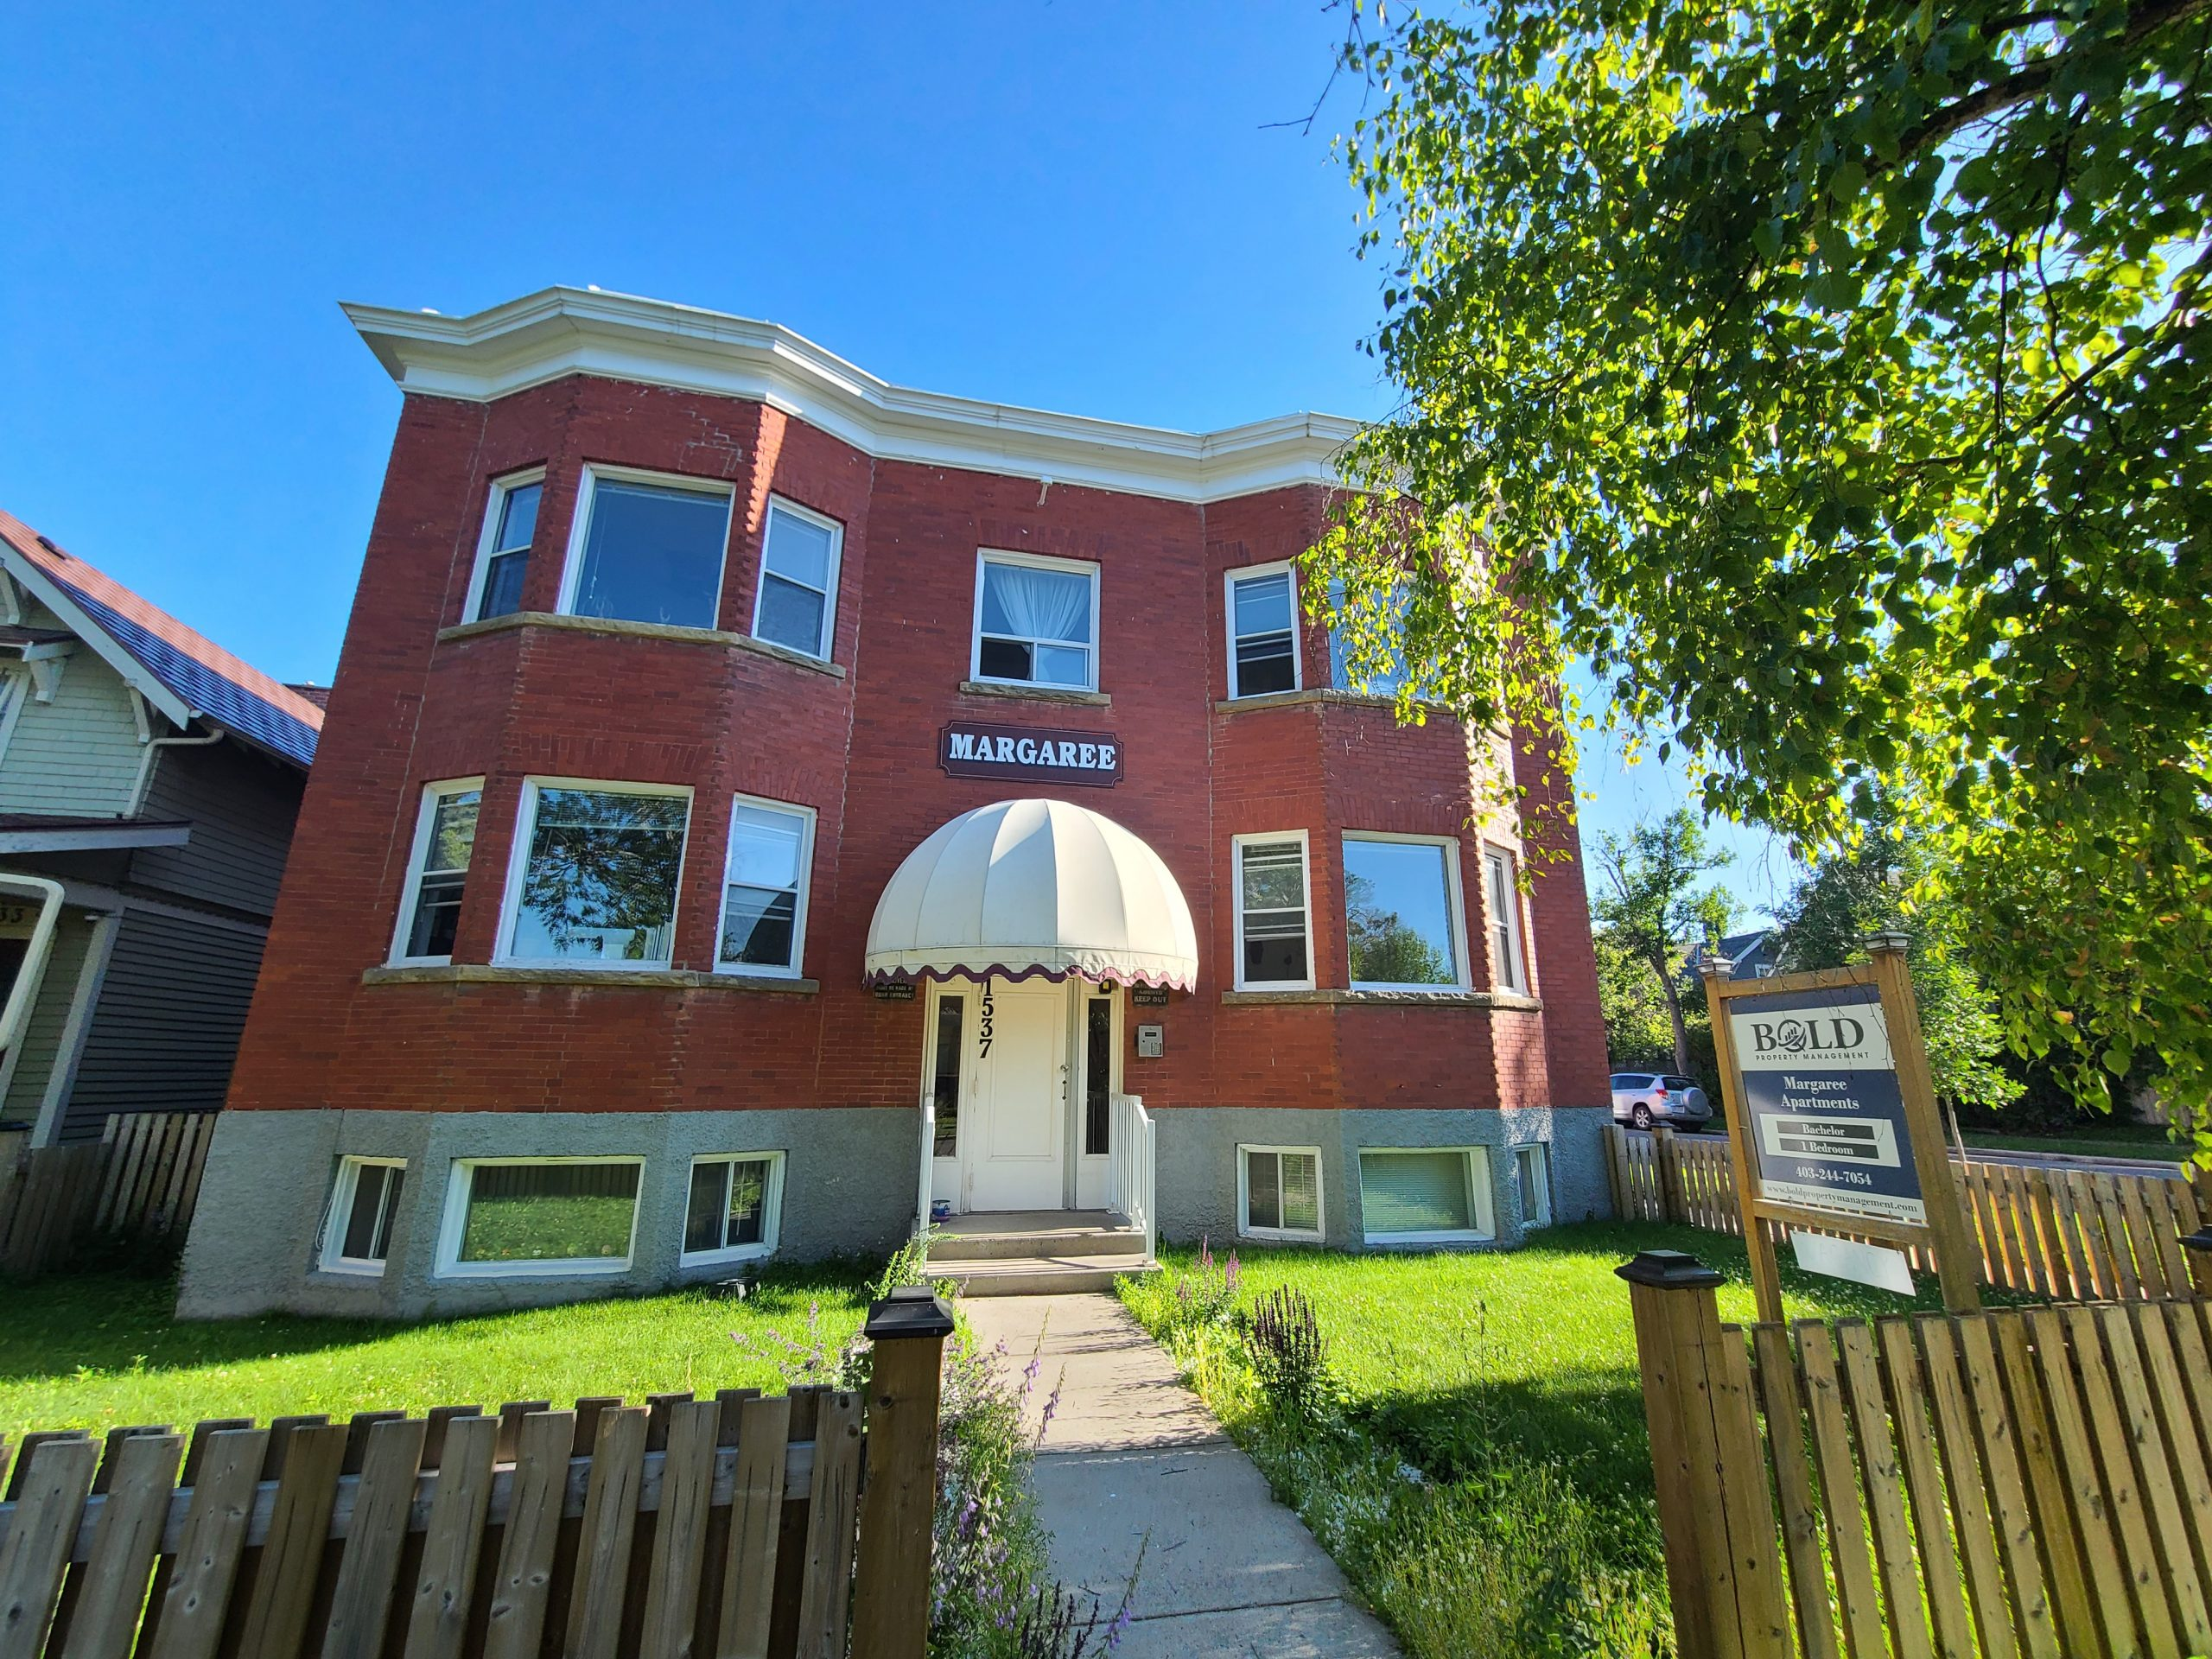 Margaree – 1537 14 Ave SW